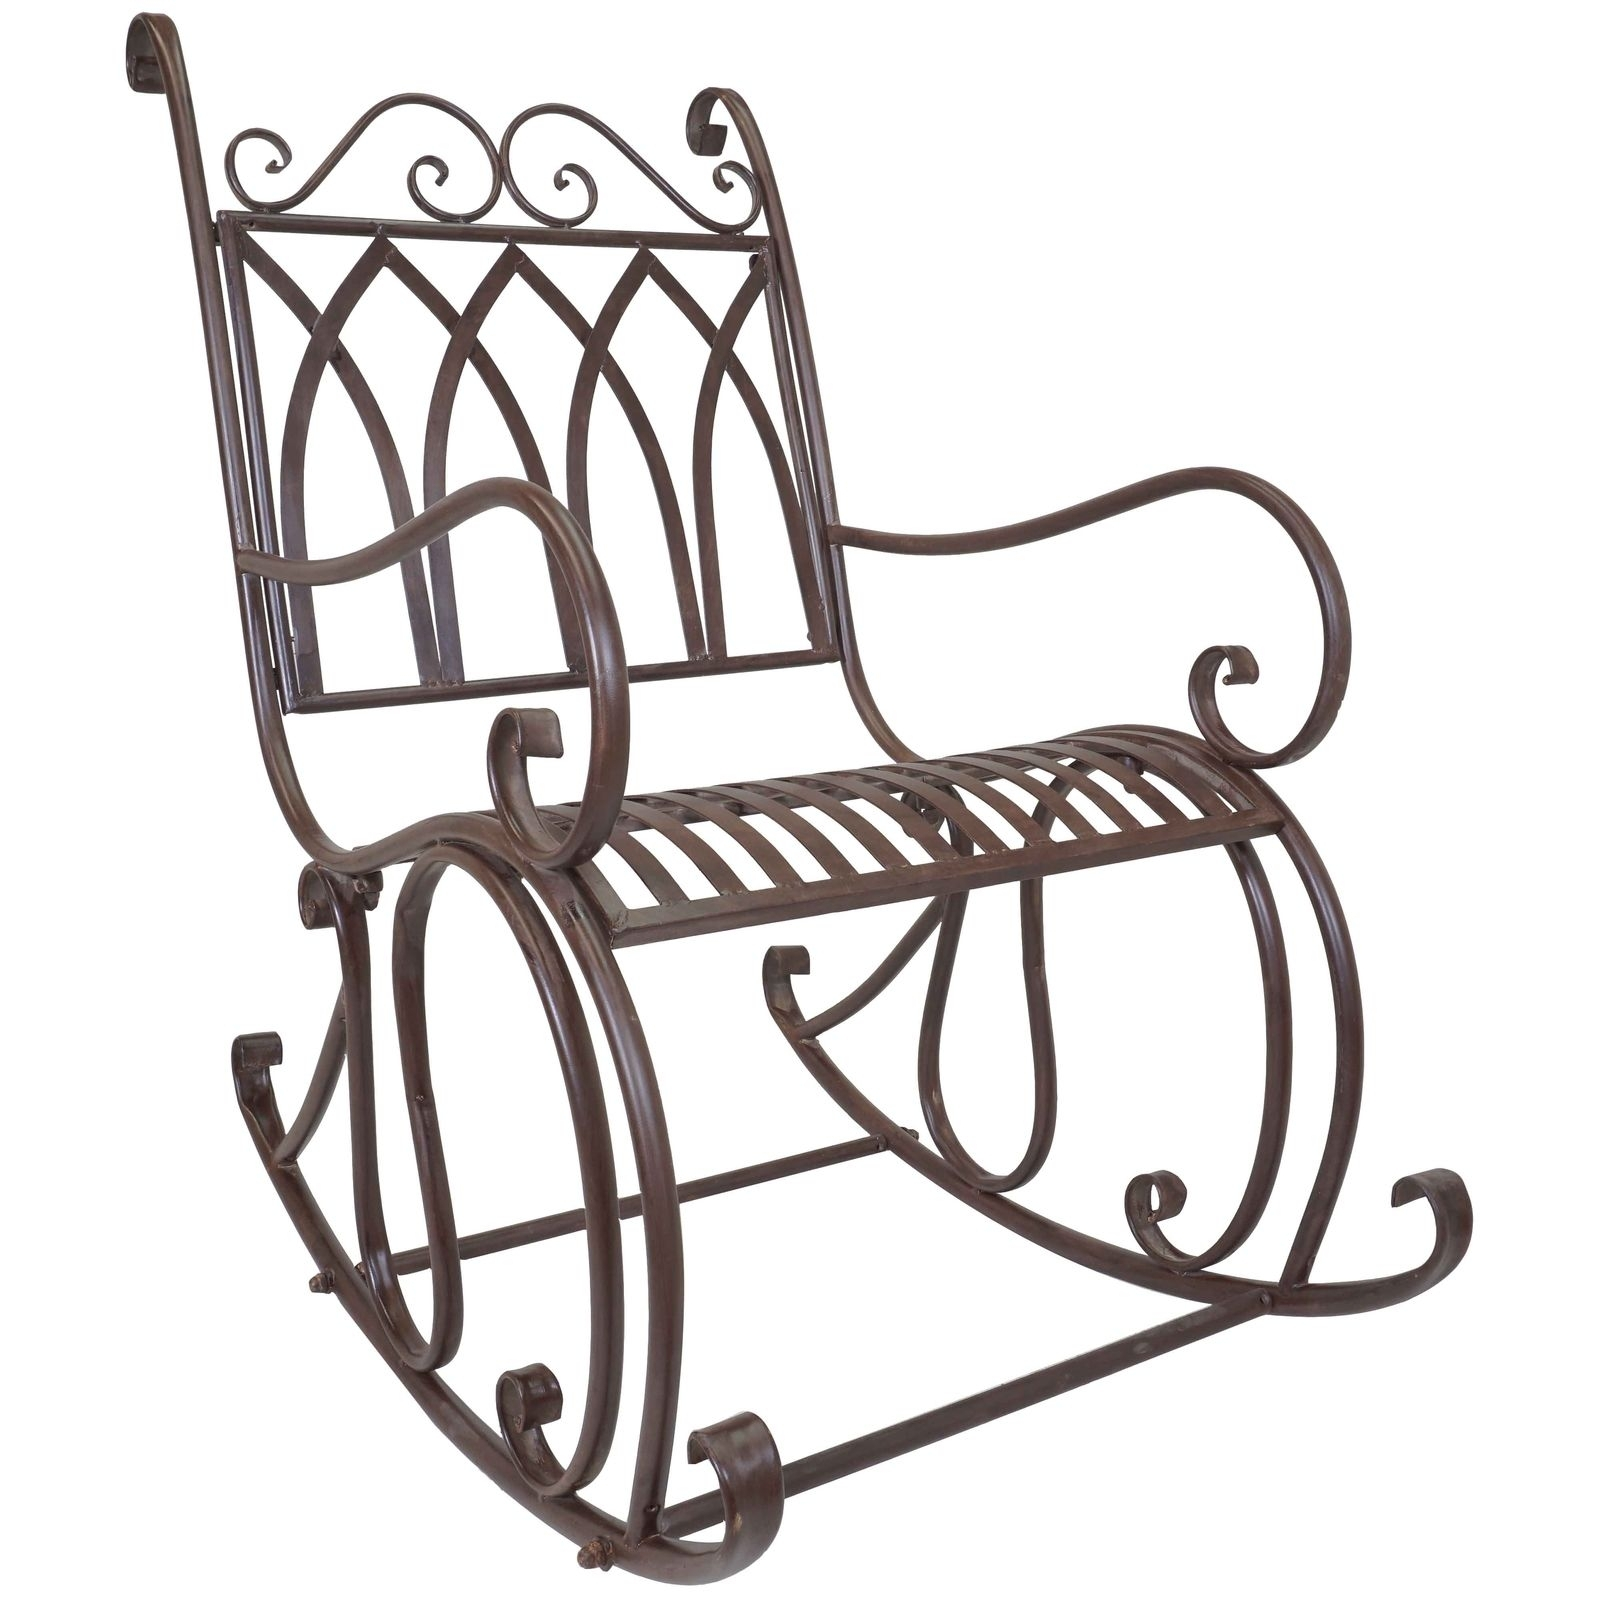 Titan Outdoor Metal Rocking Chair White Porch Patio Garden Seat Deck Intended For Outdoor Patio Metal Rocking Chairs (View 12 of 15)